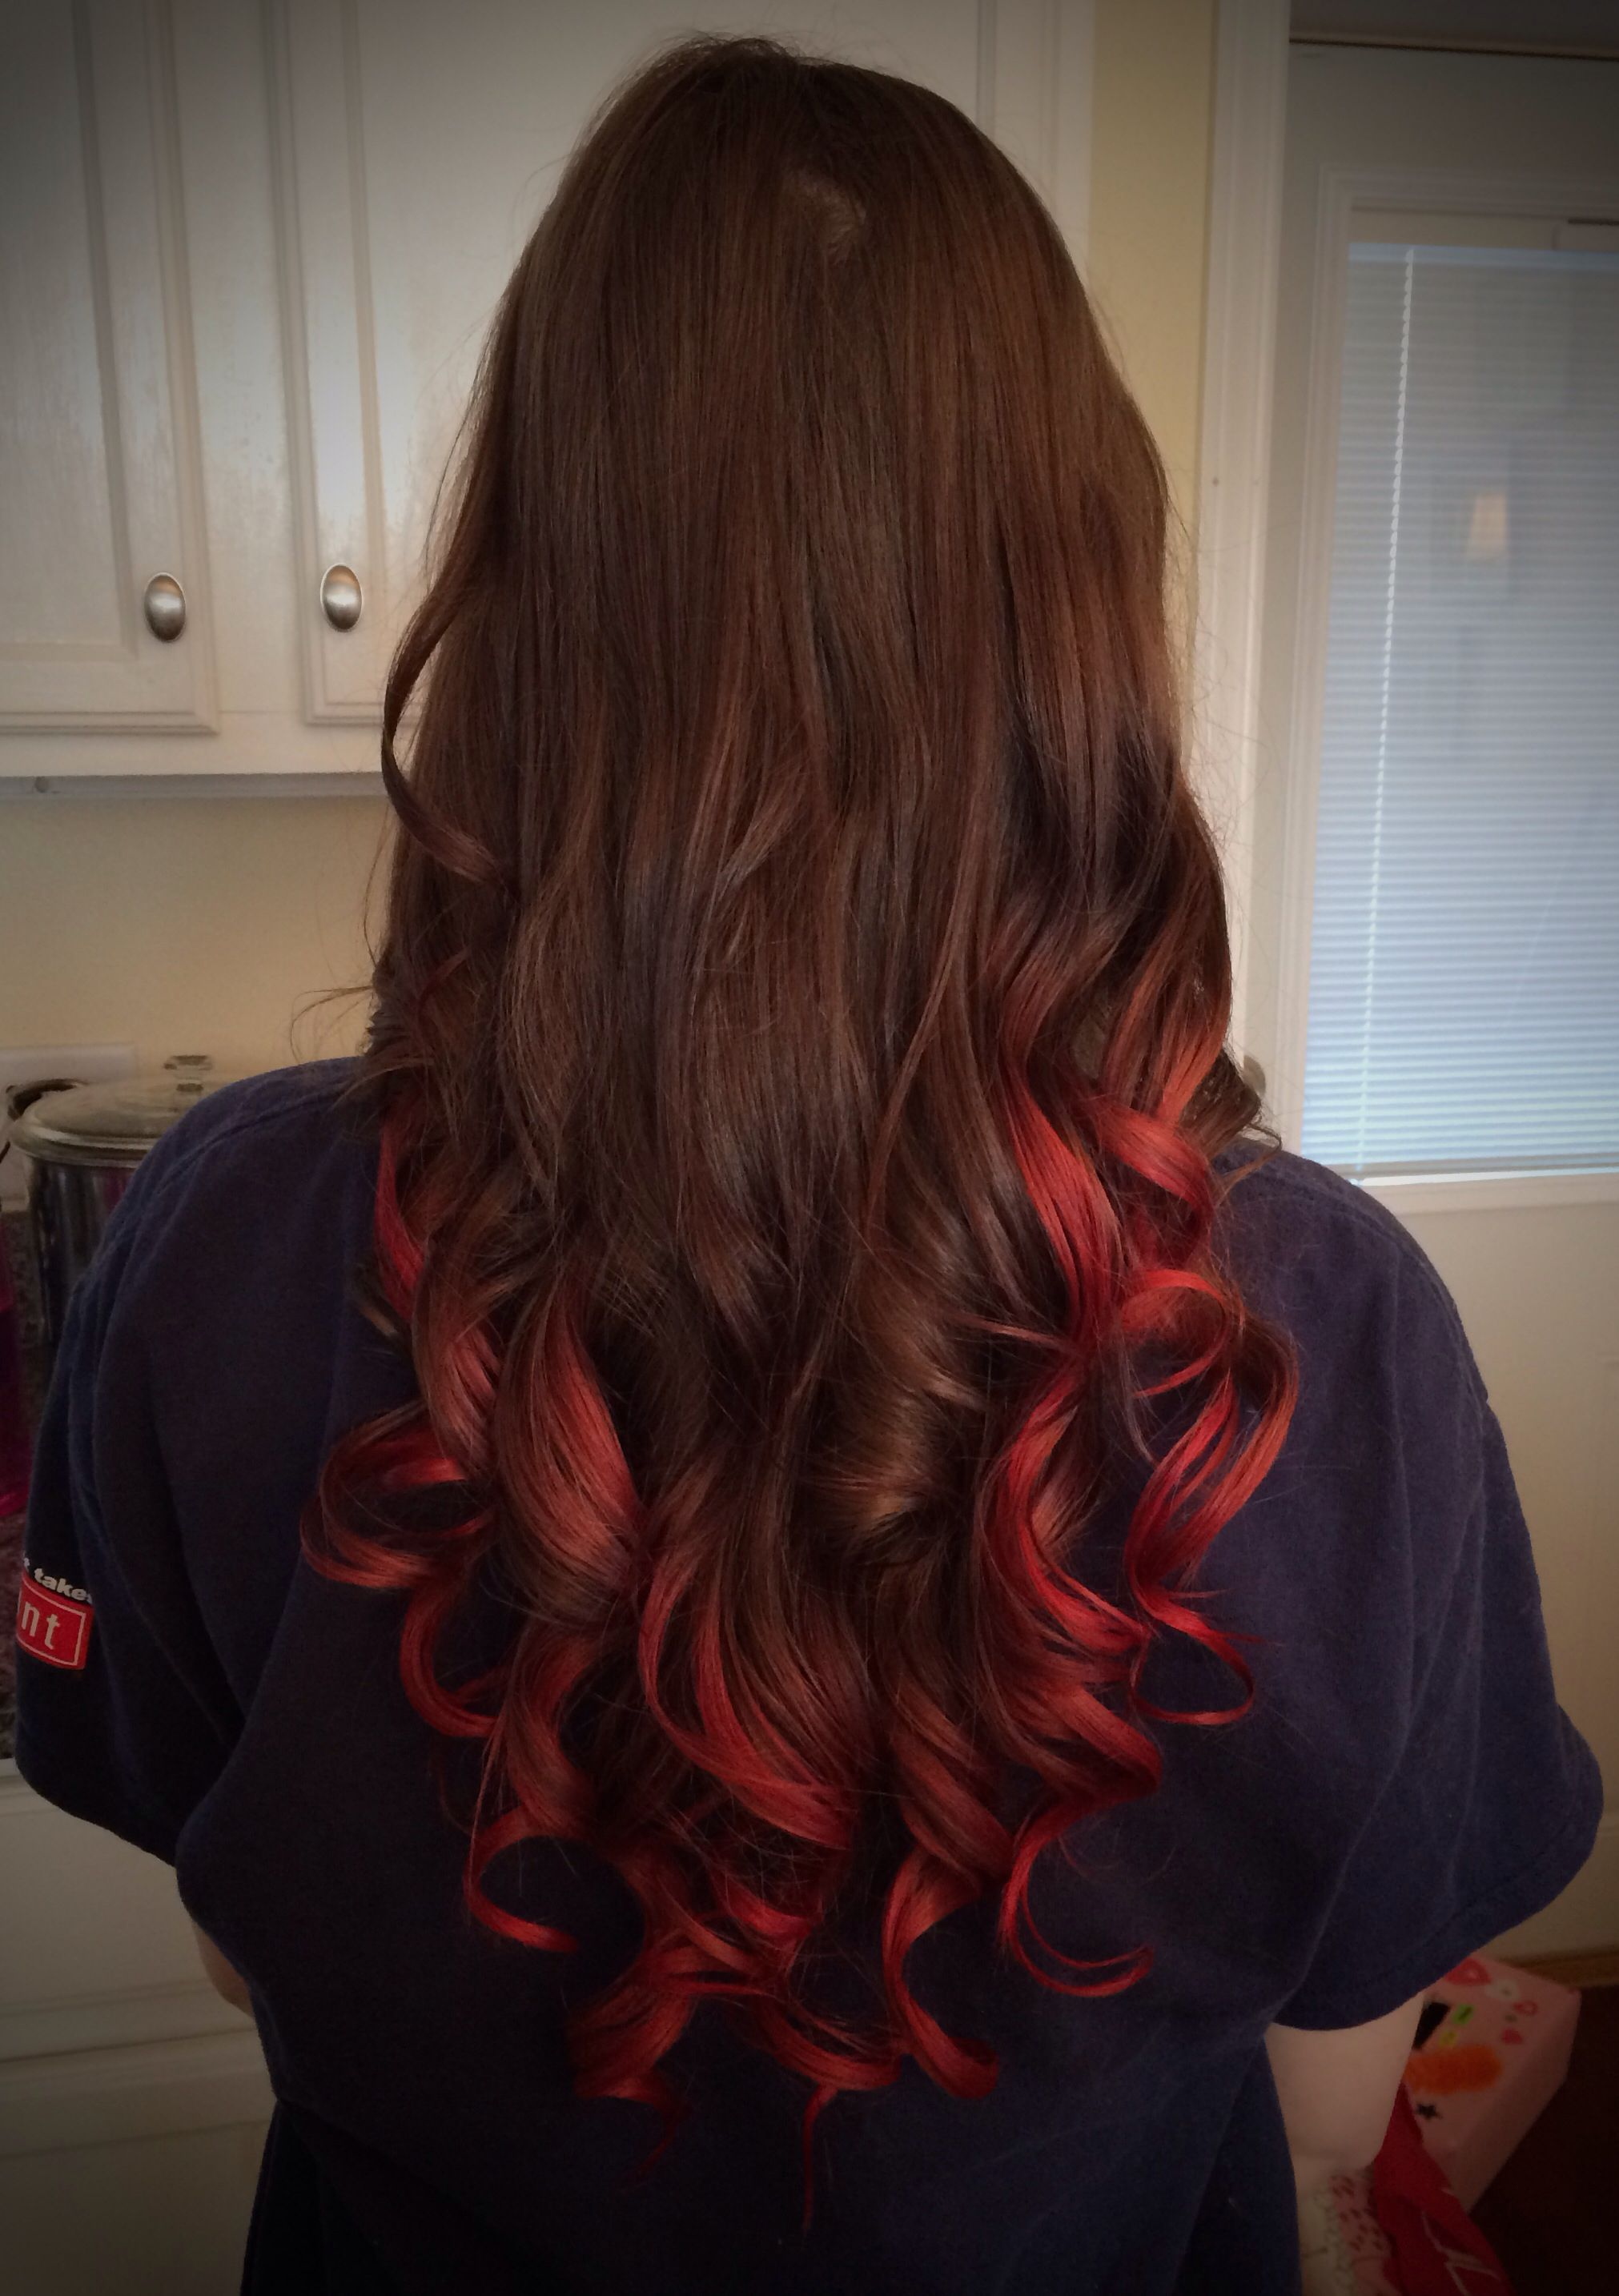 How To Get Red Kool Aid Out Of Blonde Hair